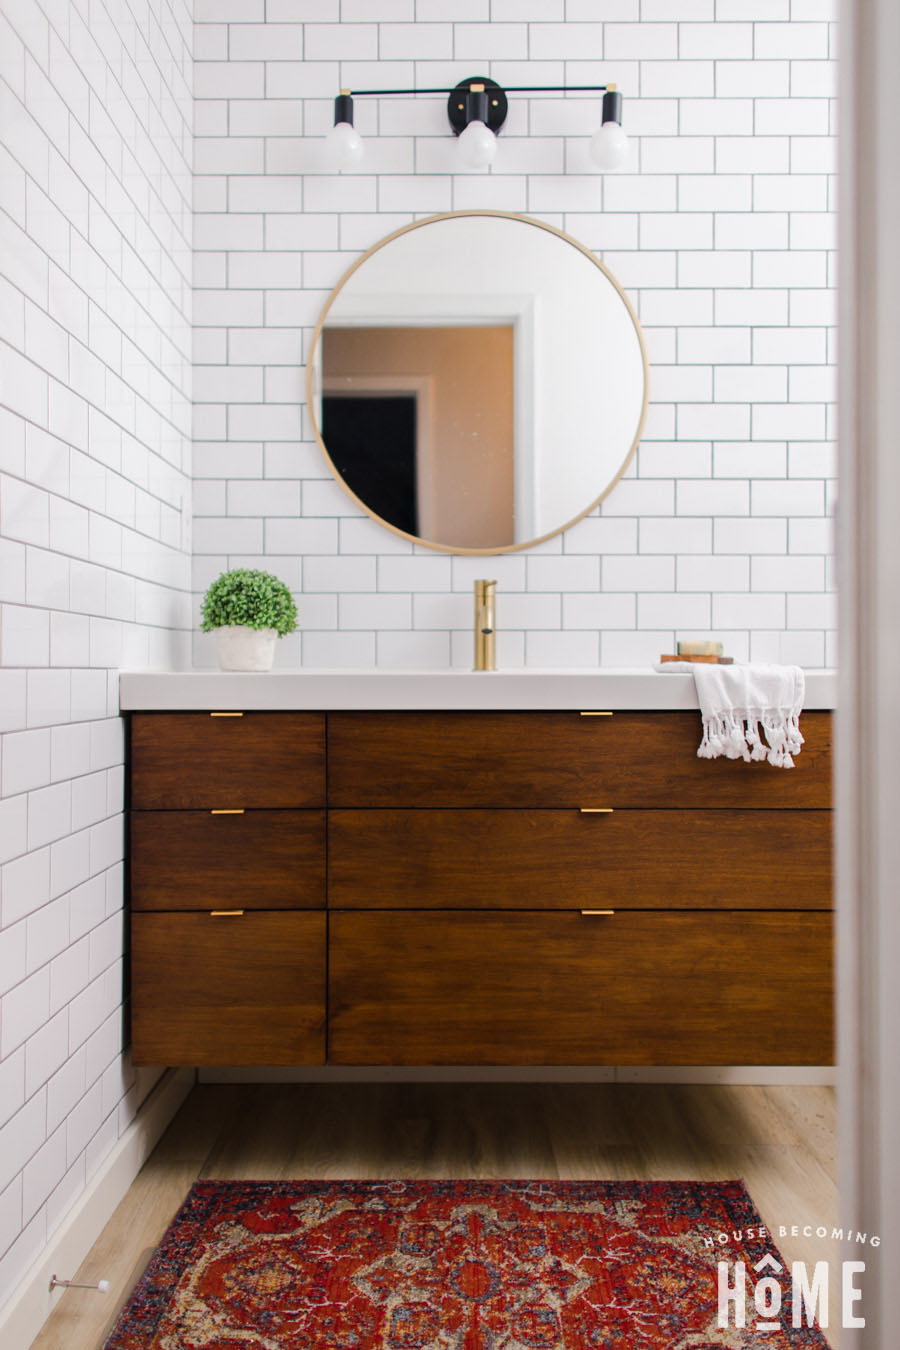 Small Bathroom Renovation After Shot on House Becoming Home : floating wood vanity, white subway tile, boho rug, black and brass light fixture